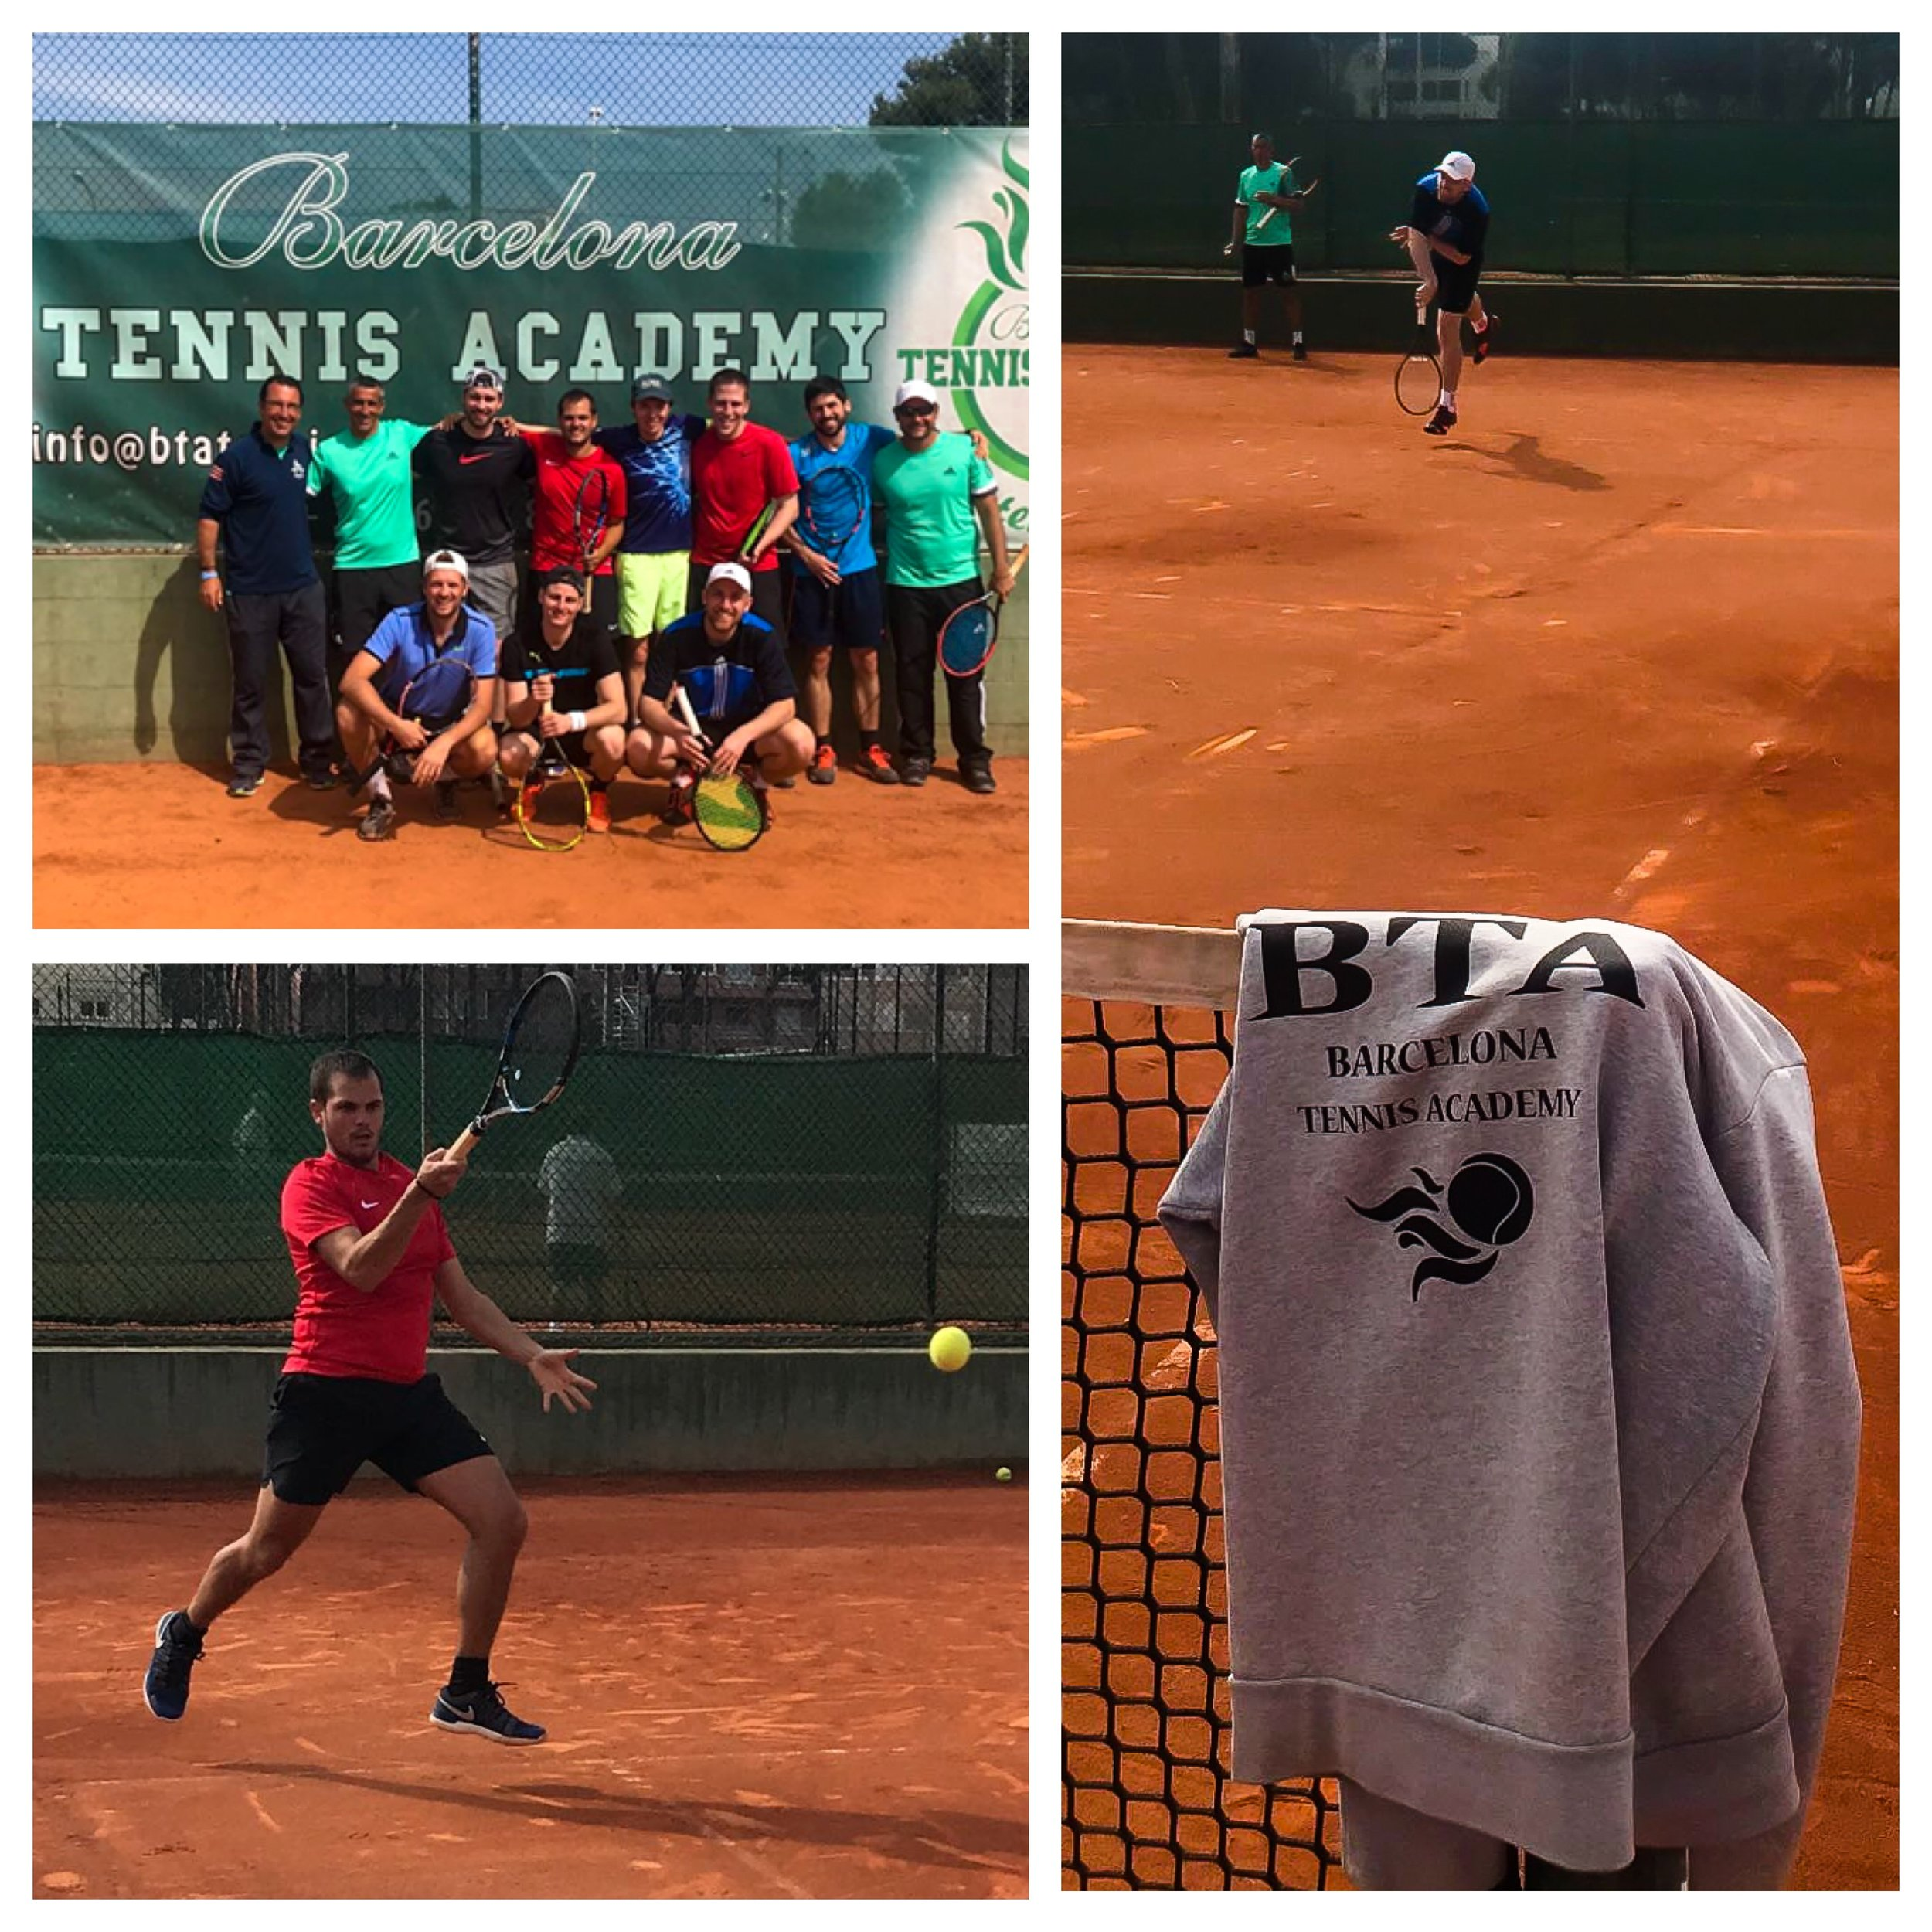 barcelona-tennis-academy-spain